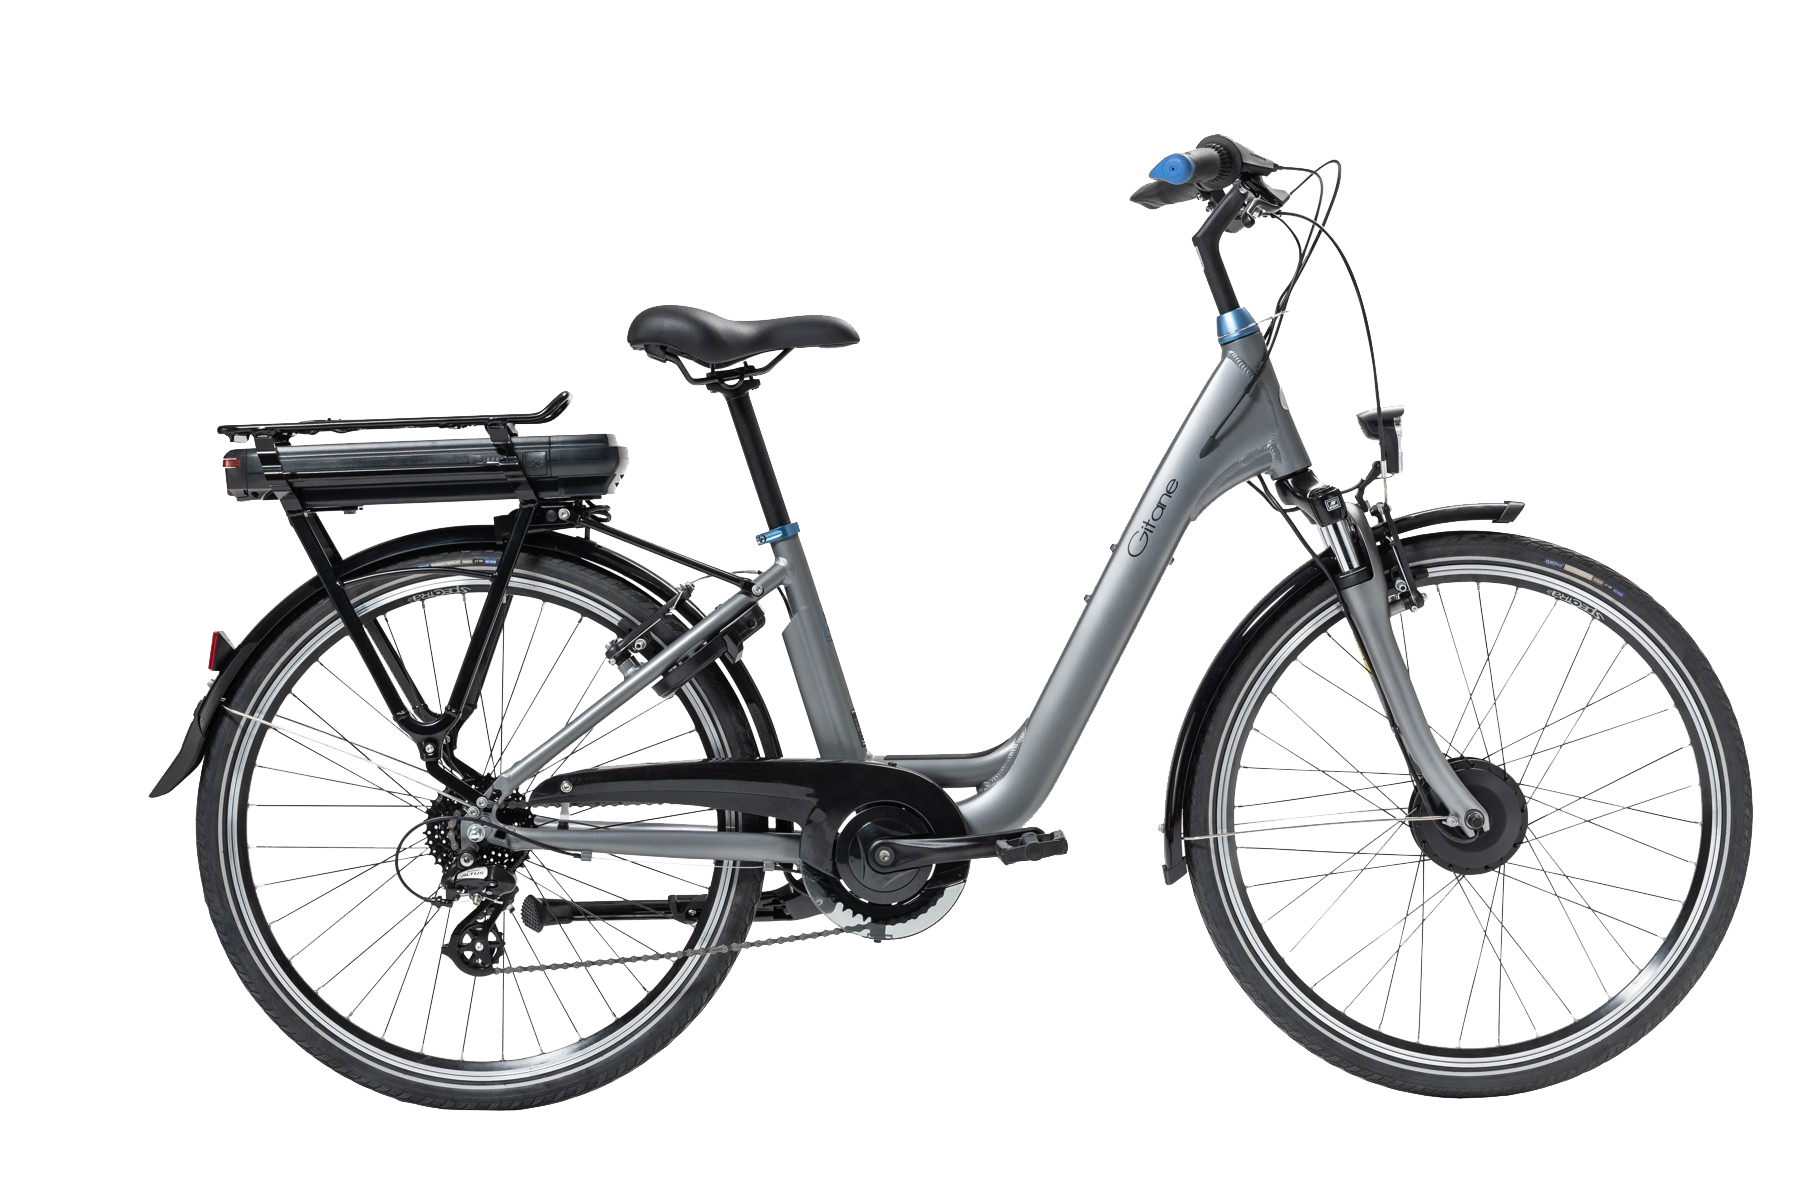 https://w8w5m3f8.stackpathcdn.com/17402-thickbox_extralarge/velo-electrique-urbain-organ-e-bike-400wh.jpg